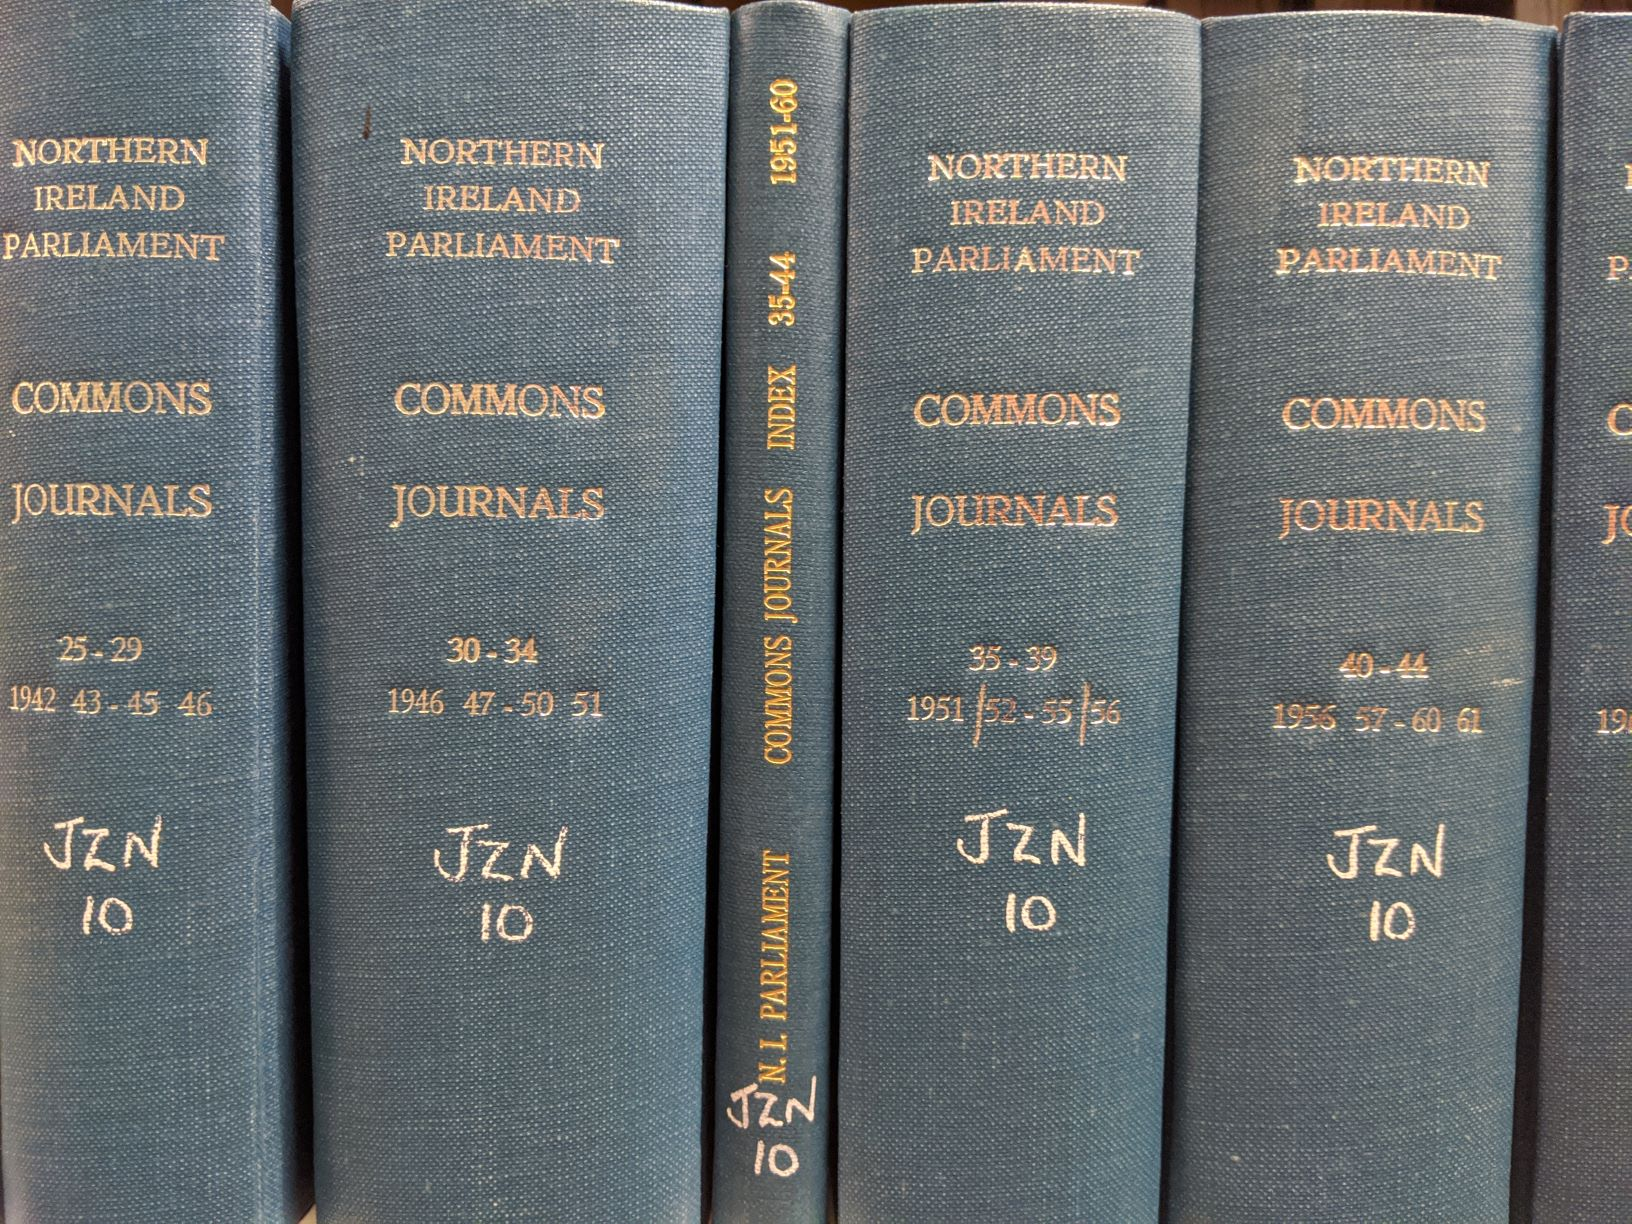 Northern Ireland House of Commons Journals